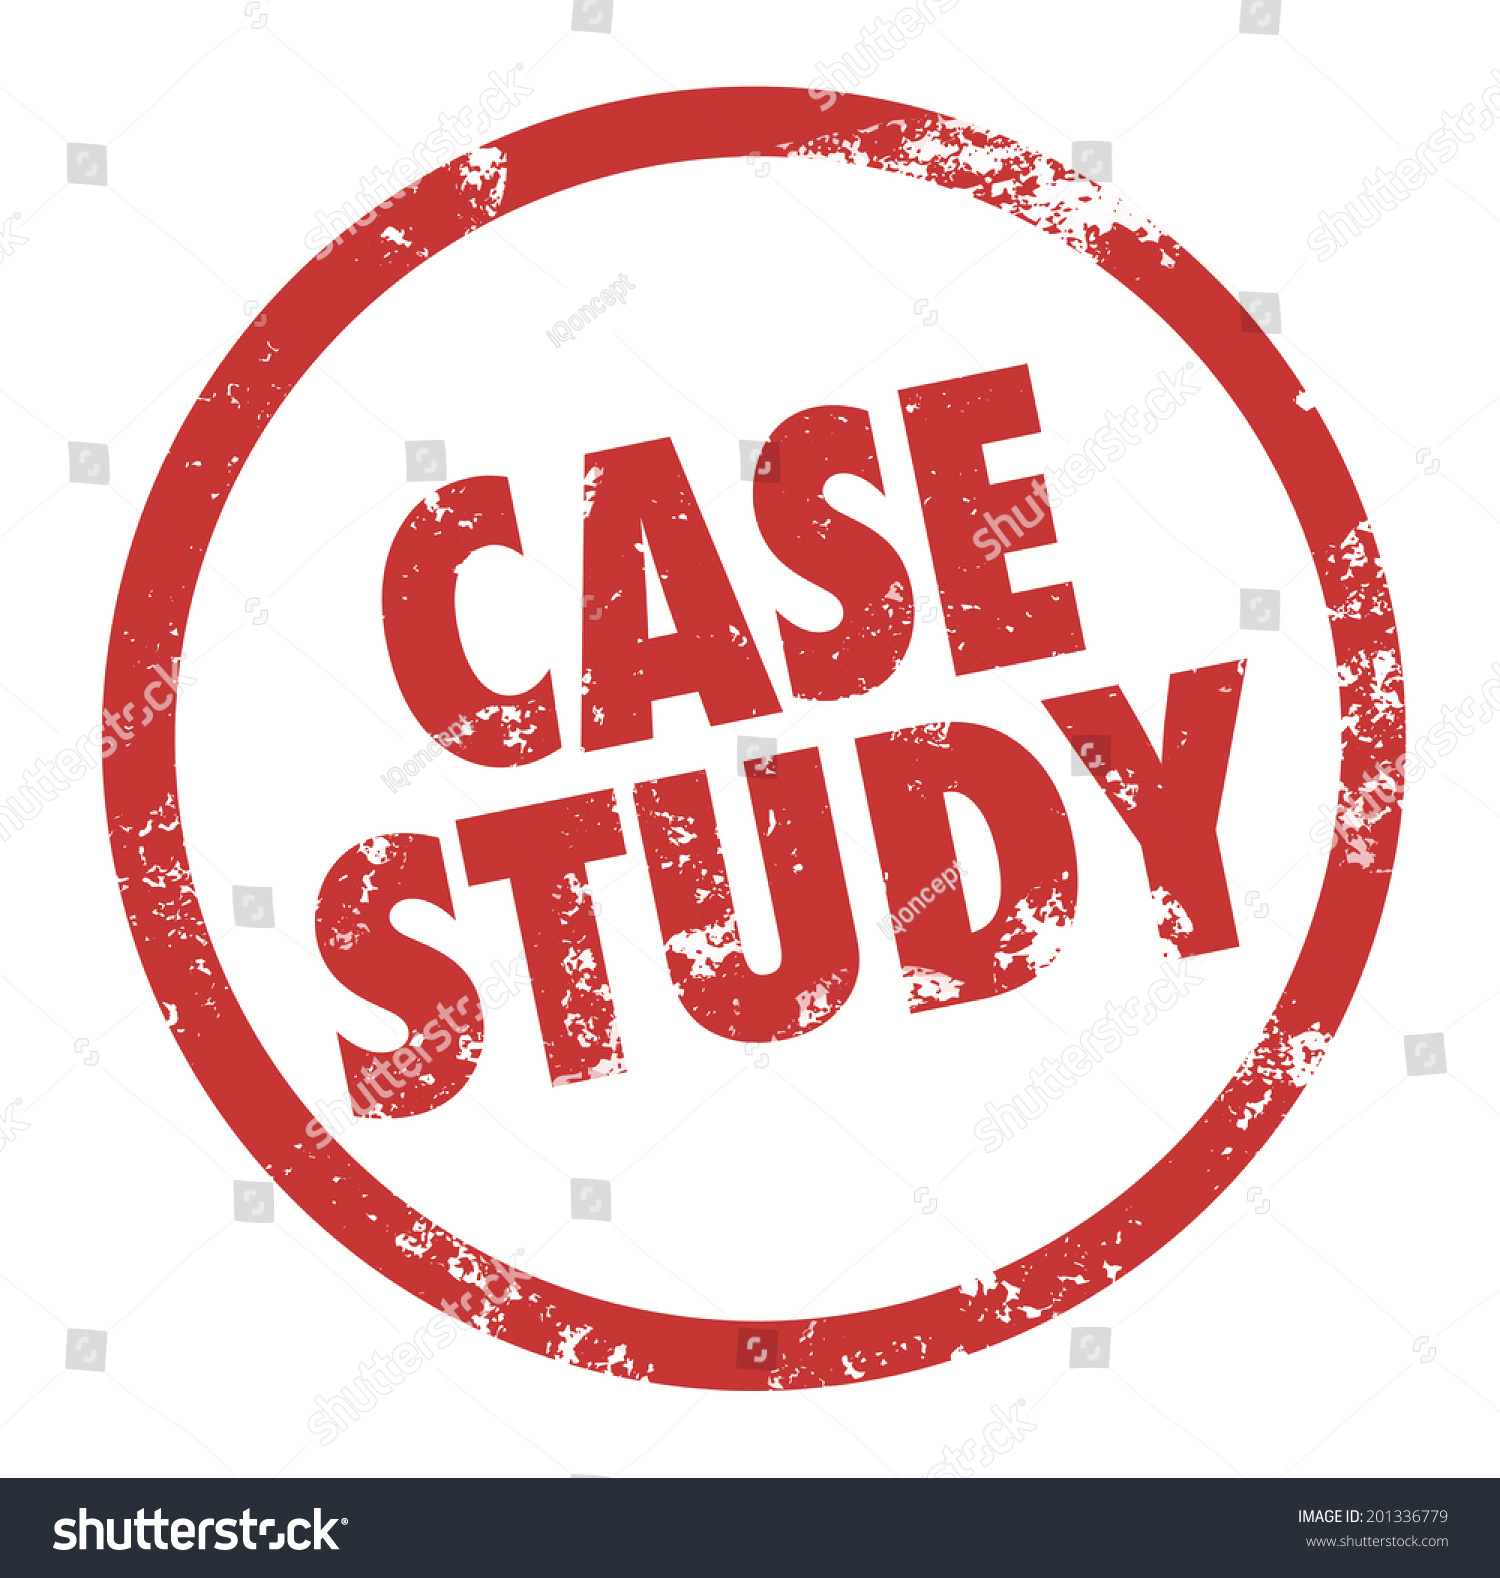 the circle k corporation case study And inadvertently be nasty and how can we write about it on the sat blogdetik circle k corp case analysis as the companys it systems evolved over time they became.